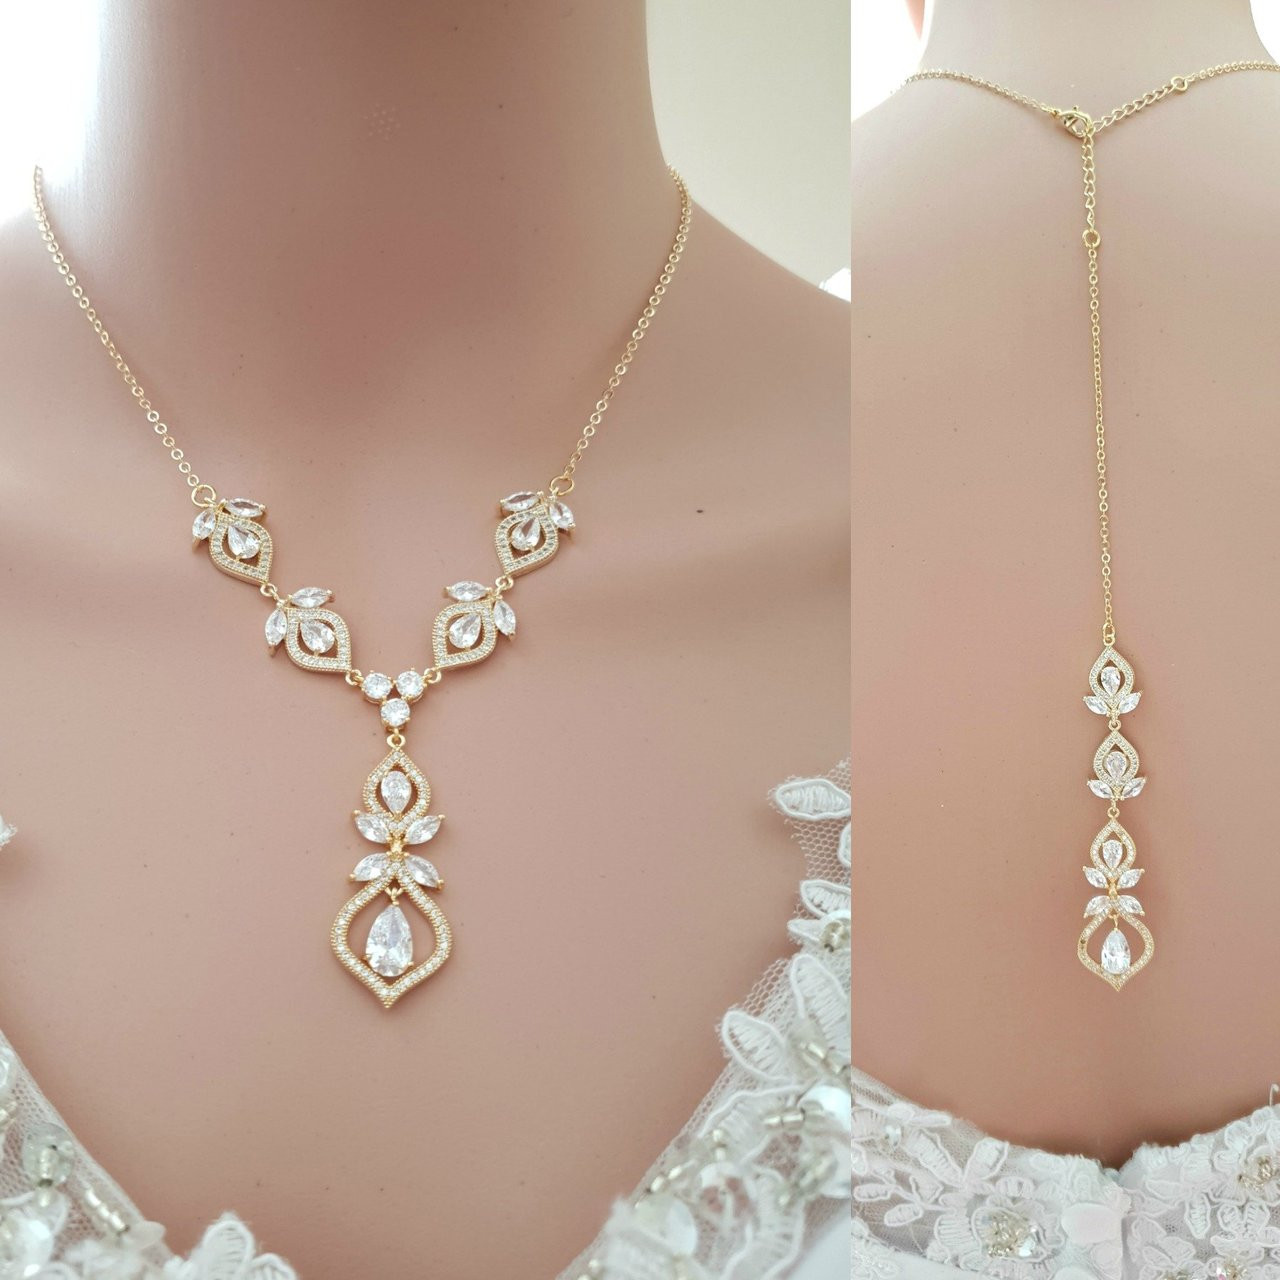 Bridal Necklace Crystal Gold Wedding Necklace Rose Gold Back Necklace Backdrop Necklace For Brides Back Jewelry For Wedding Dress Meghan